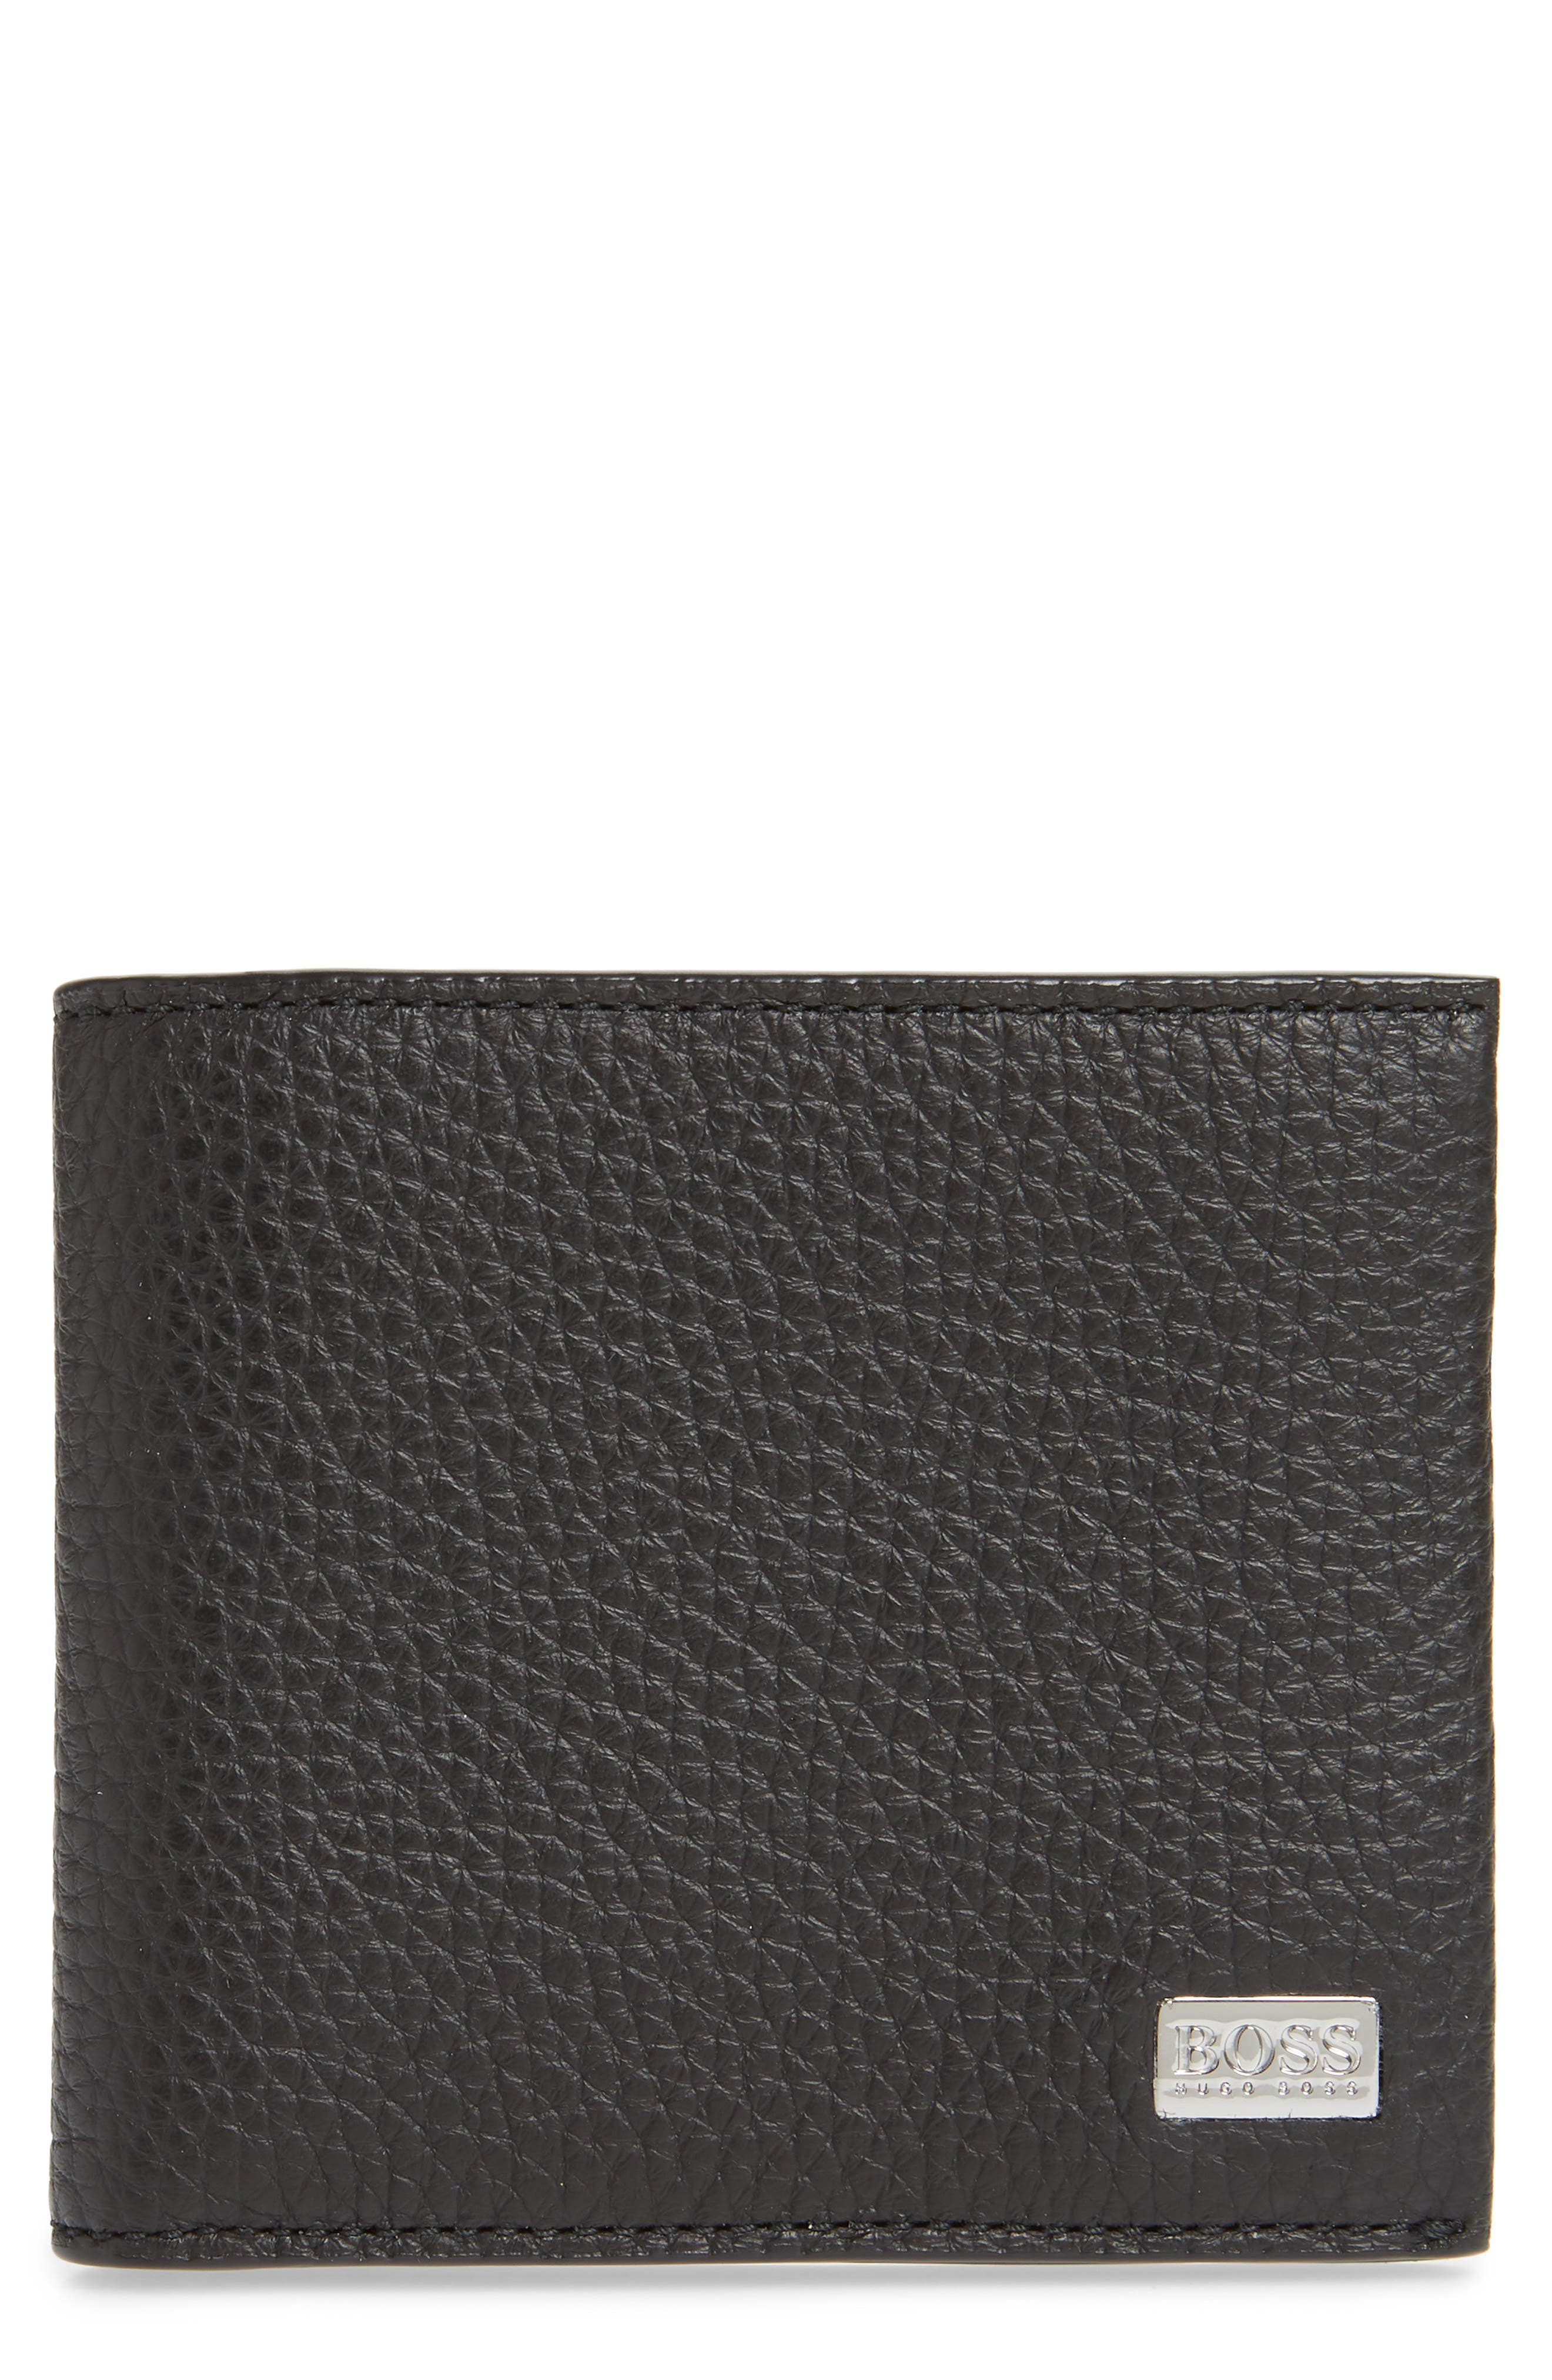 Crosstown 8-Card Leather Wallet,                         Main,                         color, BLACK